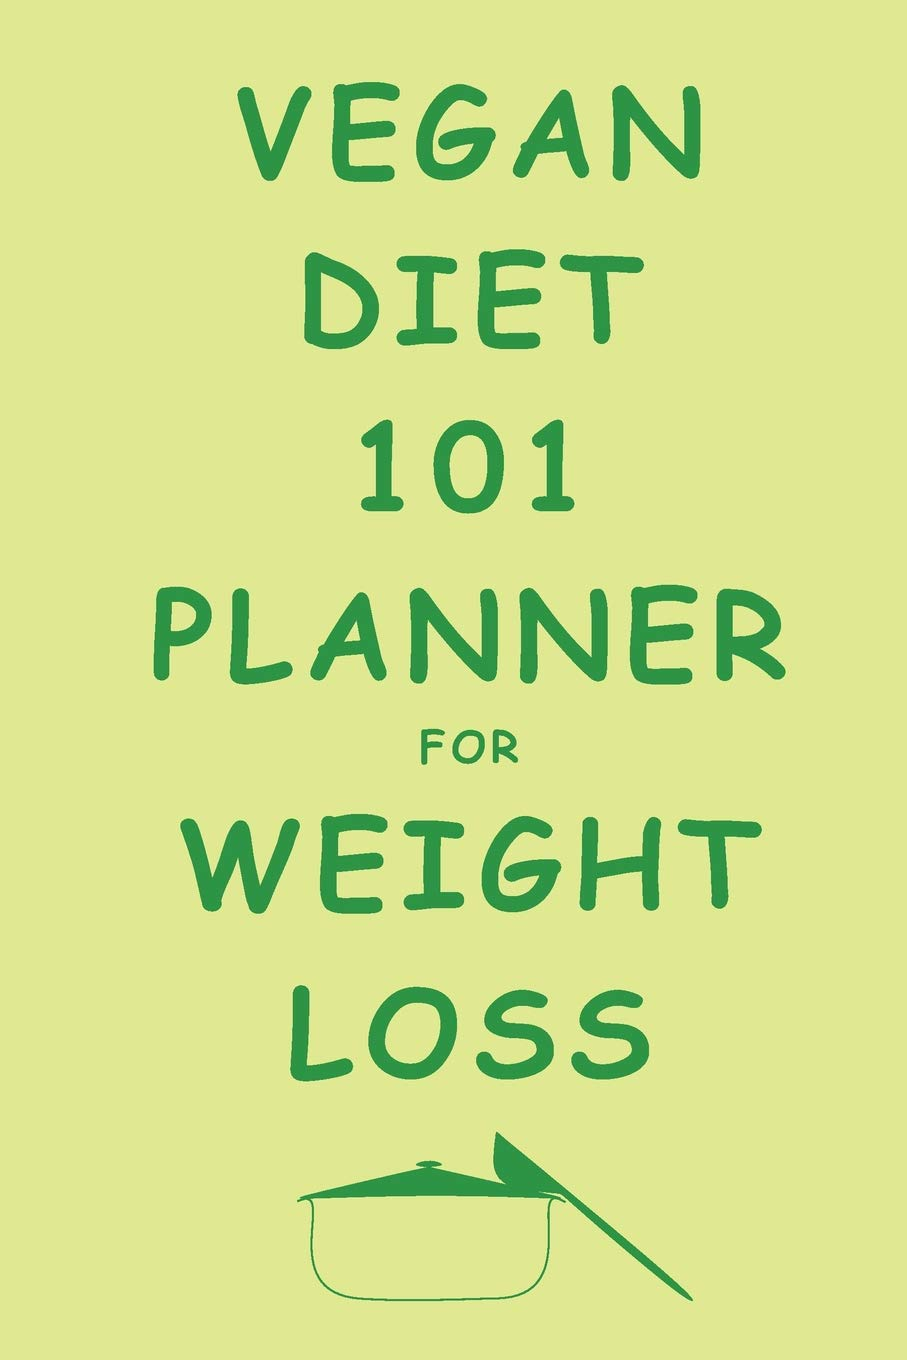 Weight loss diet for bodybuilding